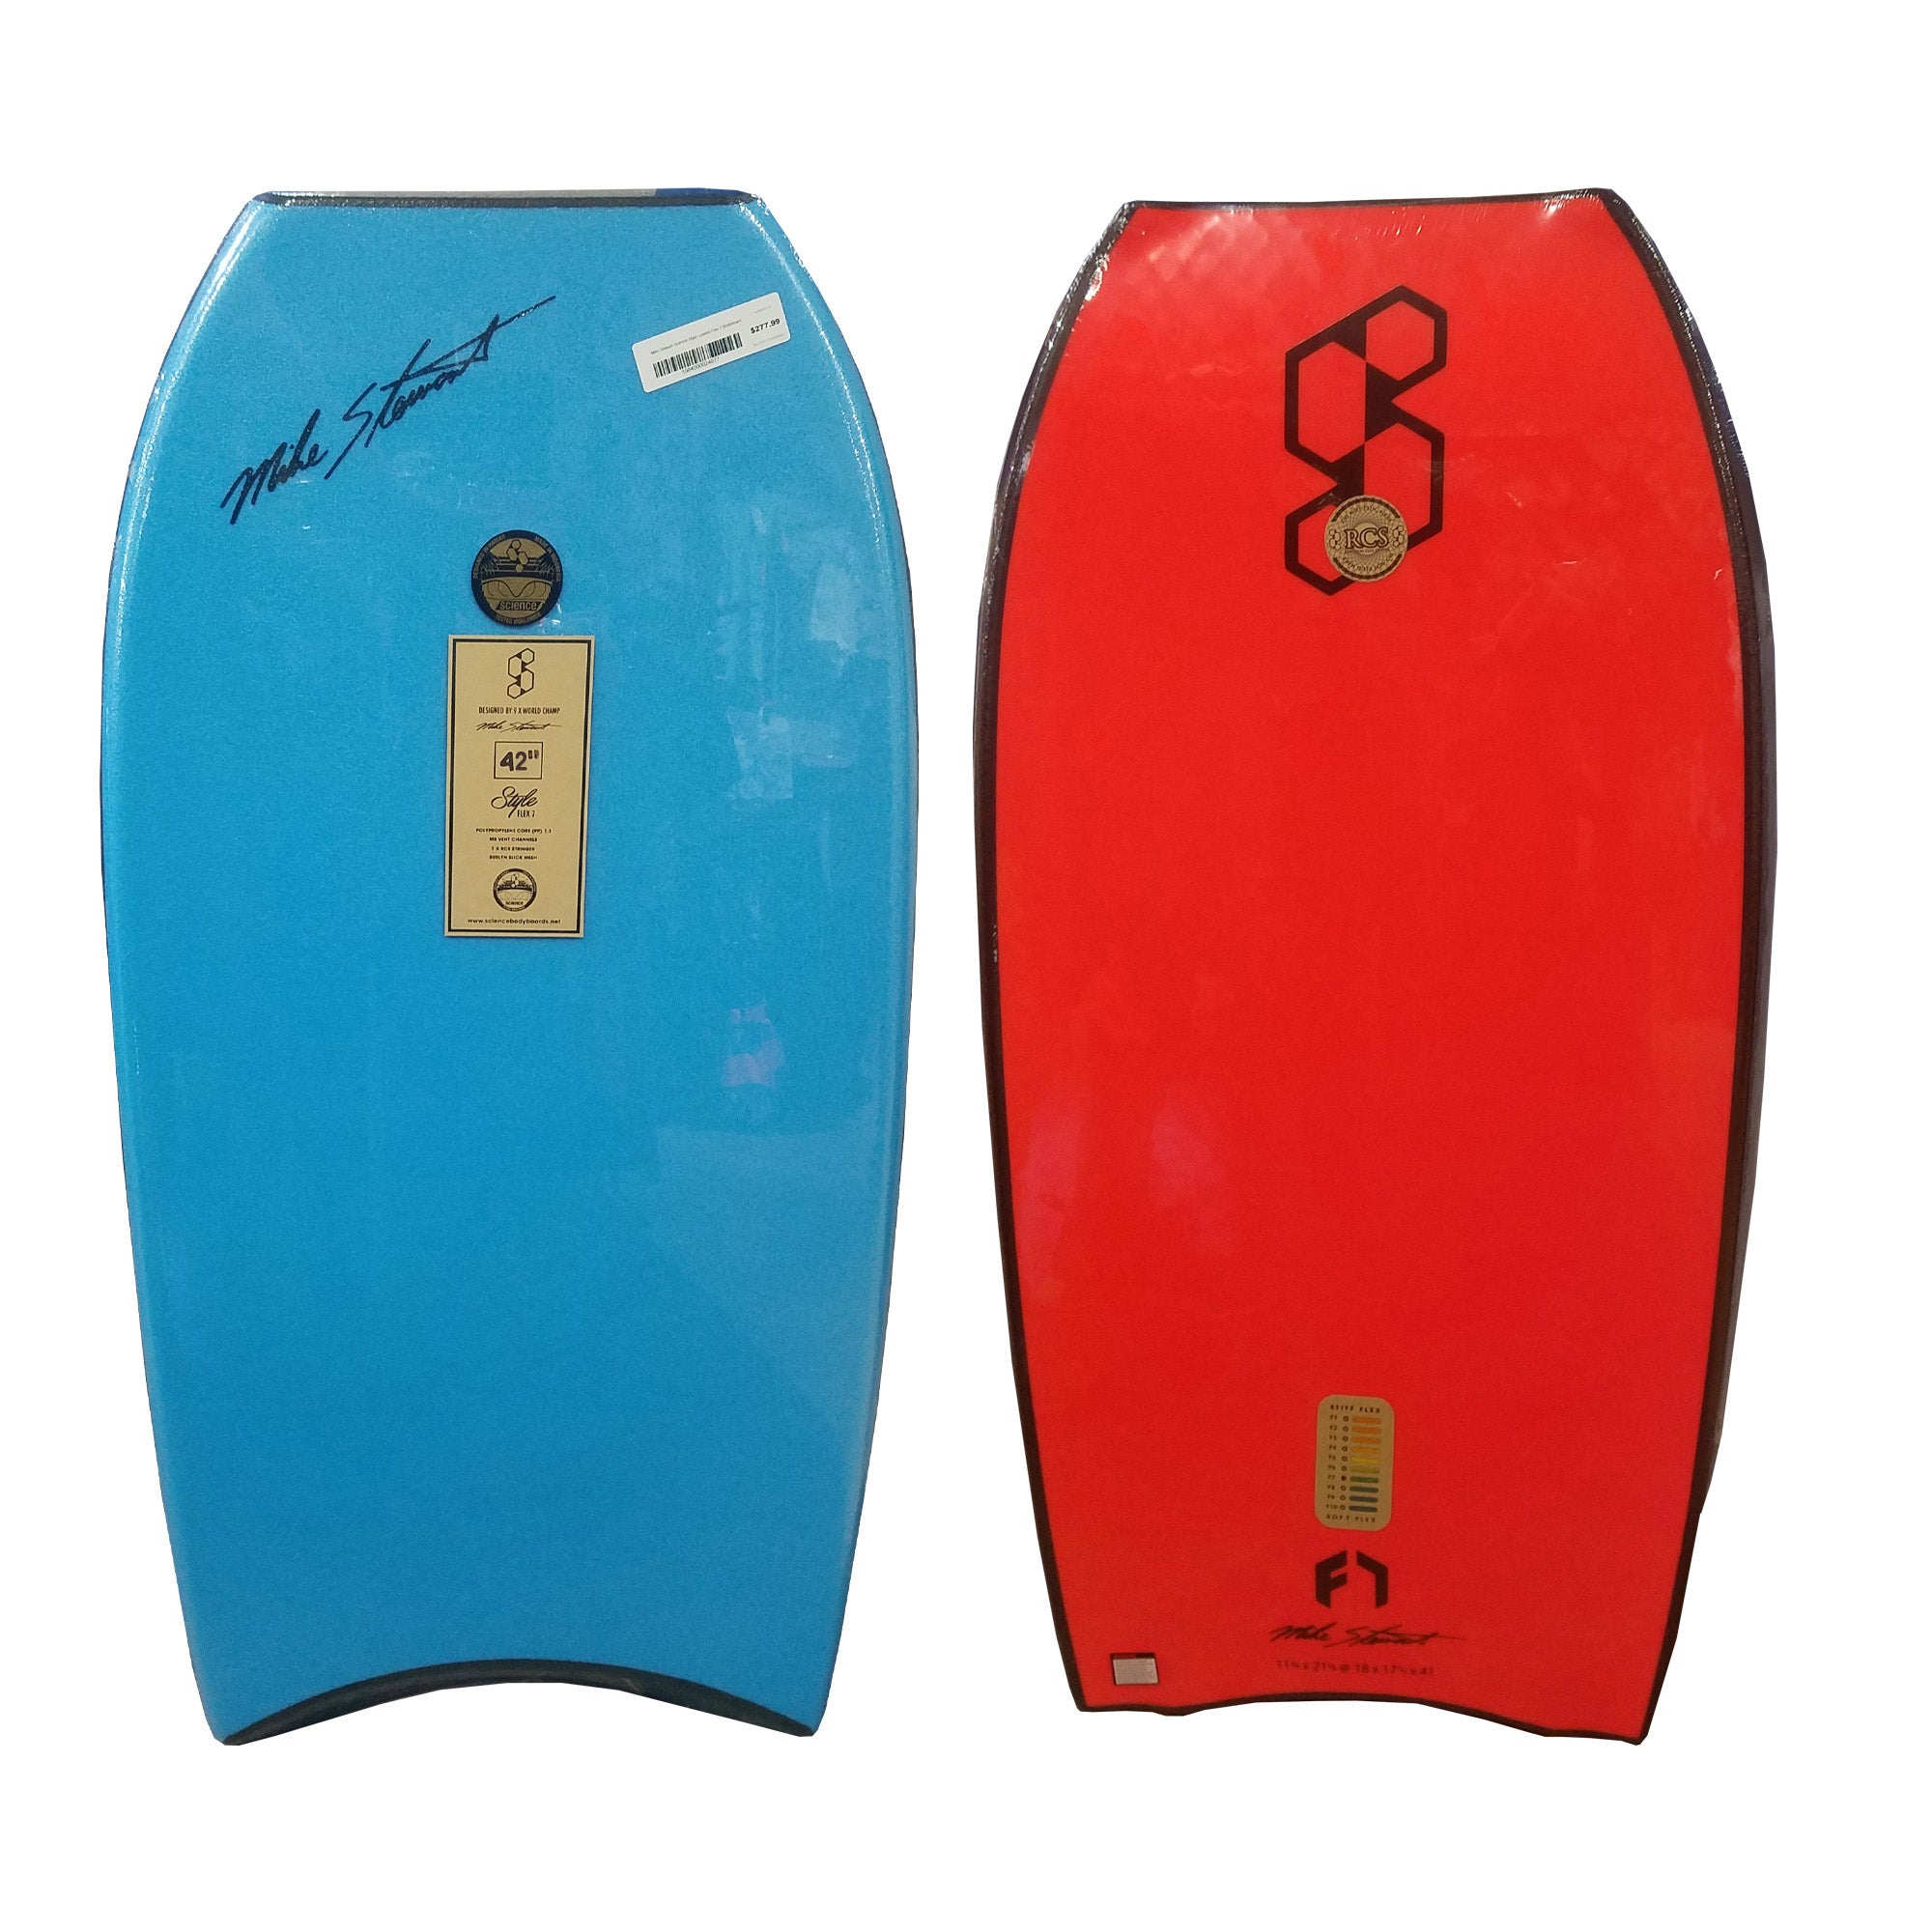 "Mike Stewart Science Style Loaded Quad Vent Crescent Tail 42"" Bodyboard - Aqua/Red"